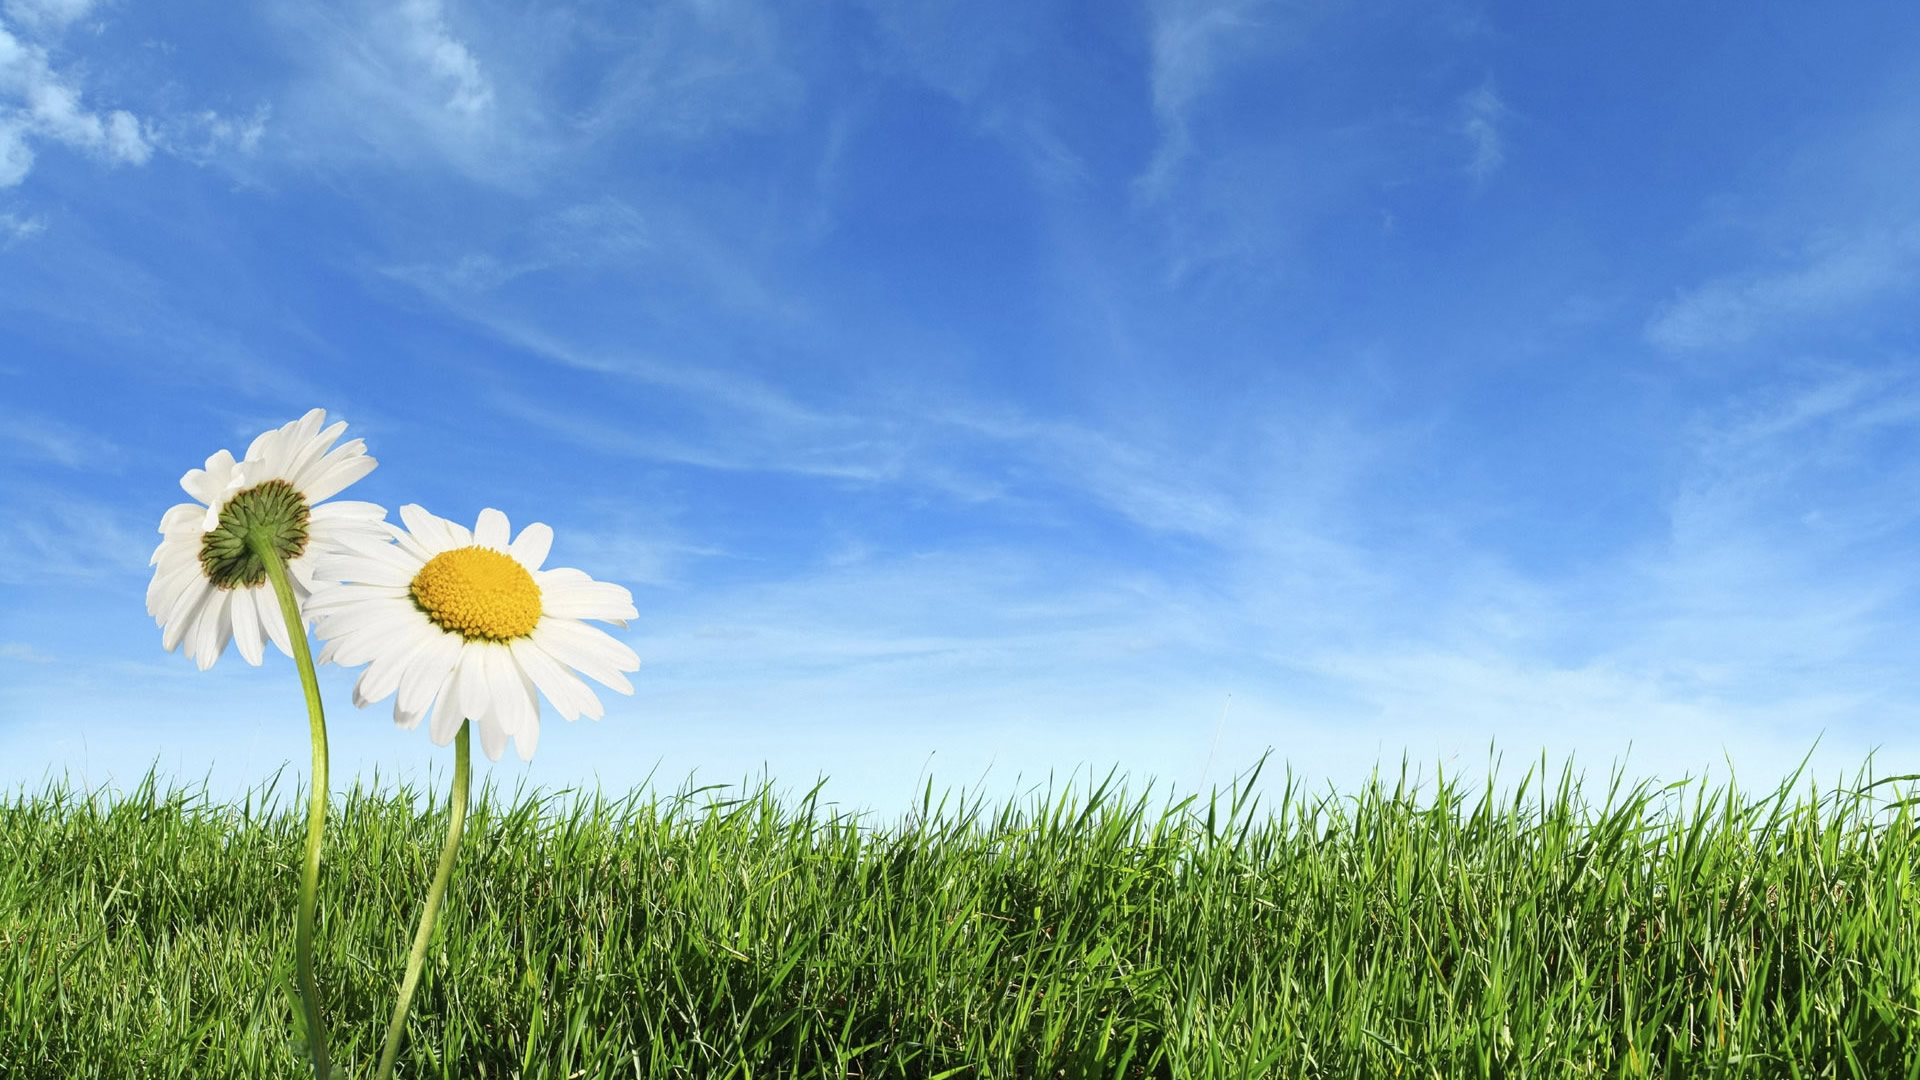 Spring Background Wallpaper: Staggering Spring Hd Wallpaper Background Desktop 1920x1080px